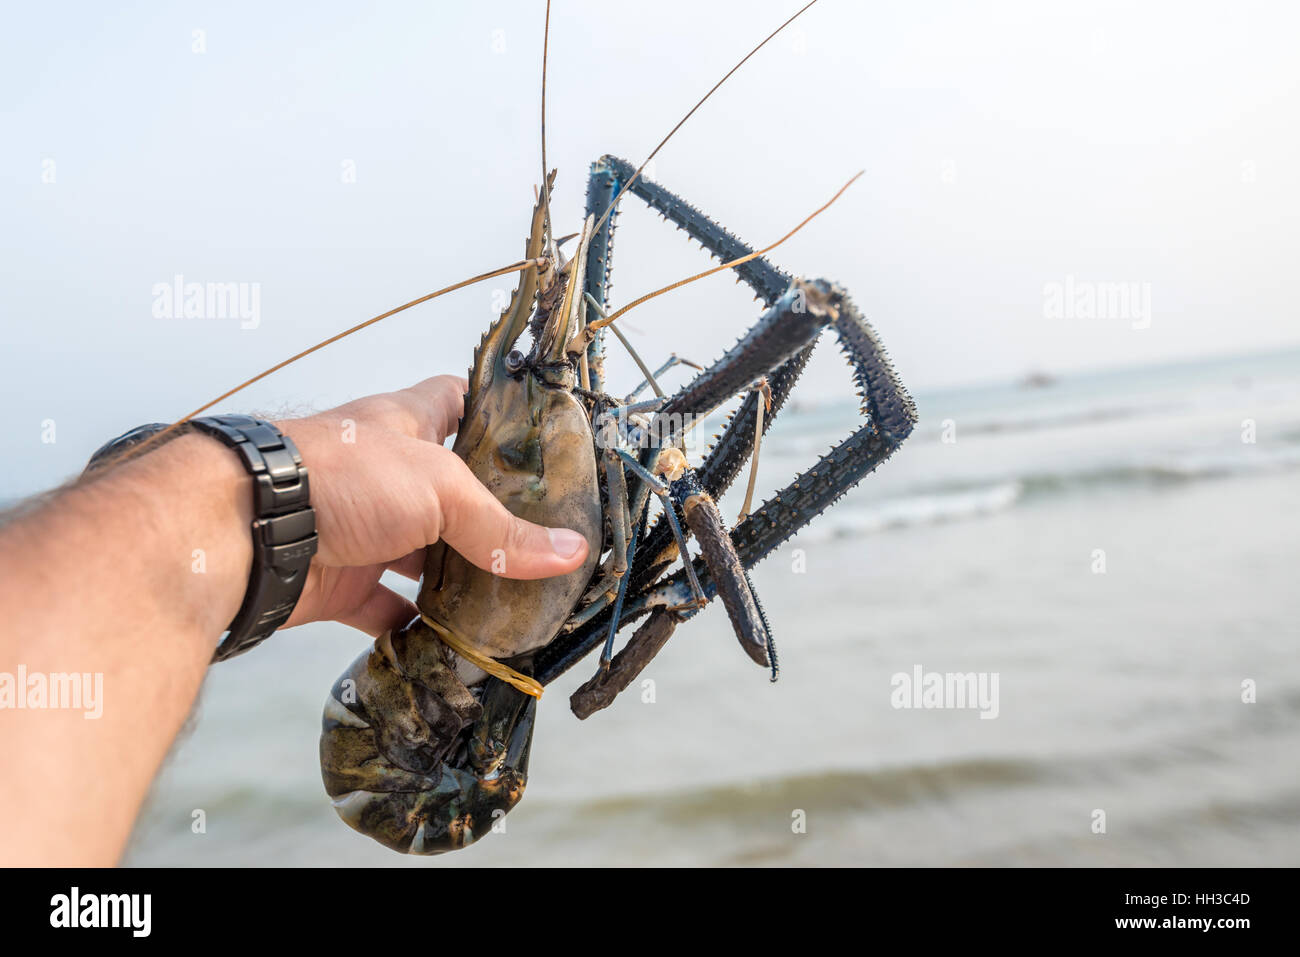 Giant freshwater prawn Stock Photo: 130997117 - Alamy